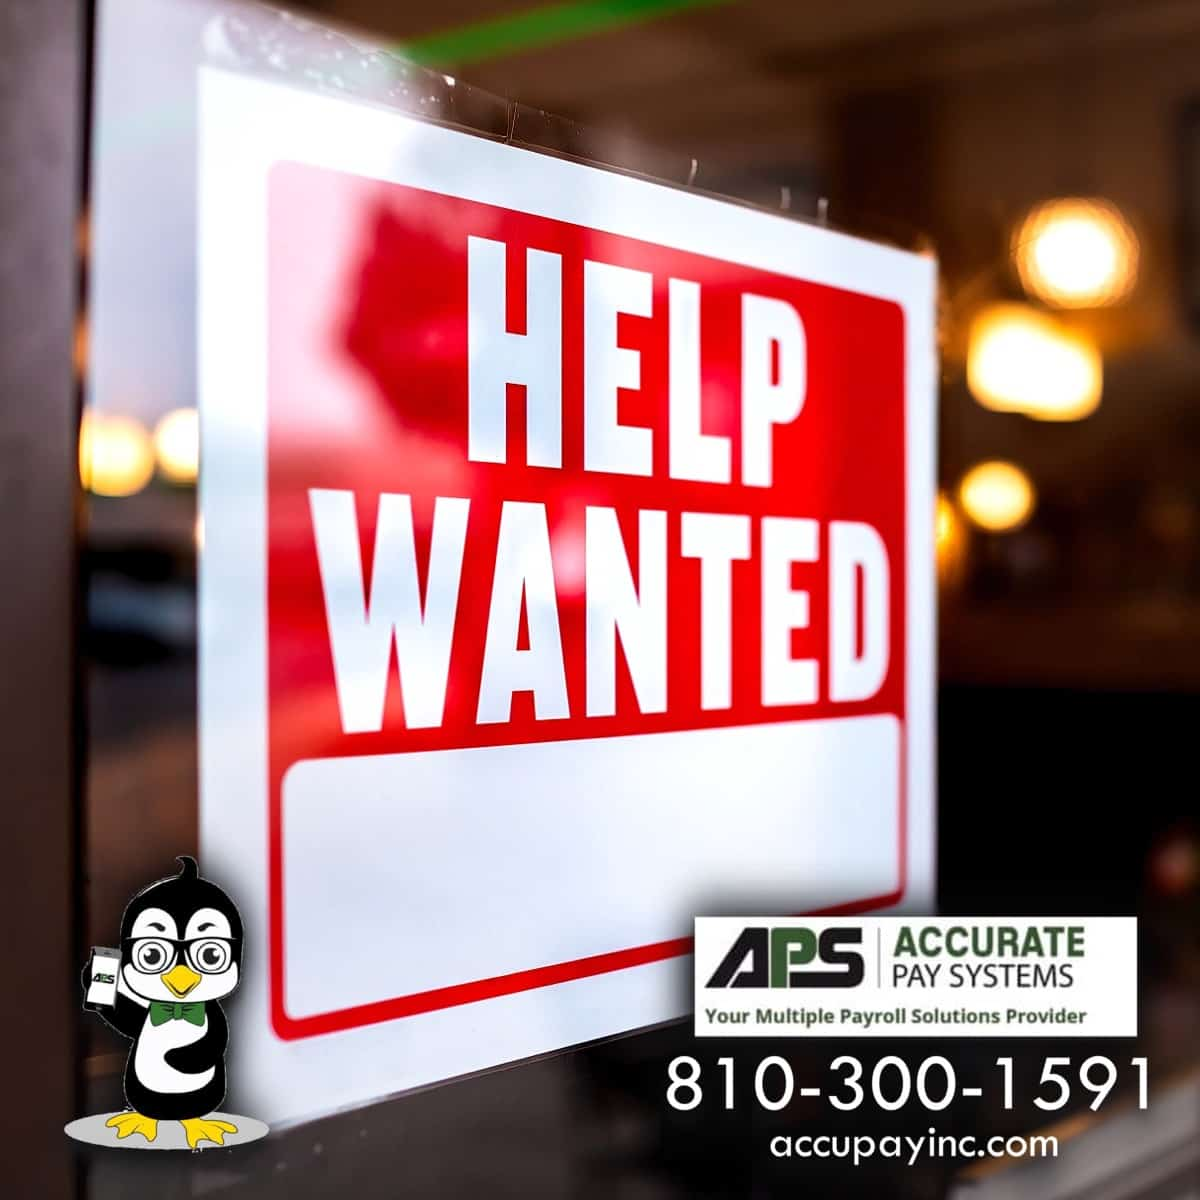 Now hiring sign from Accurate Pay Systems, Inc.